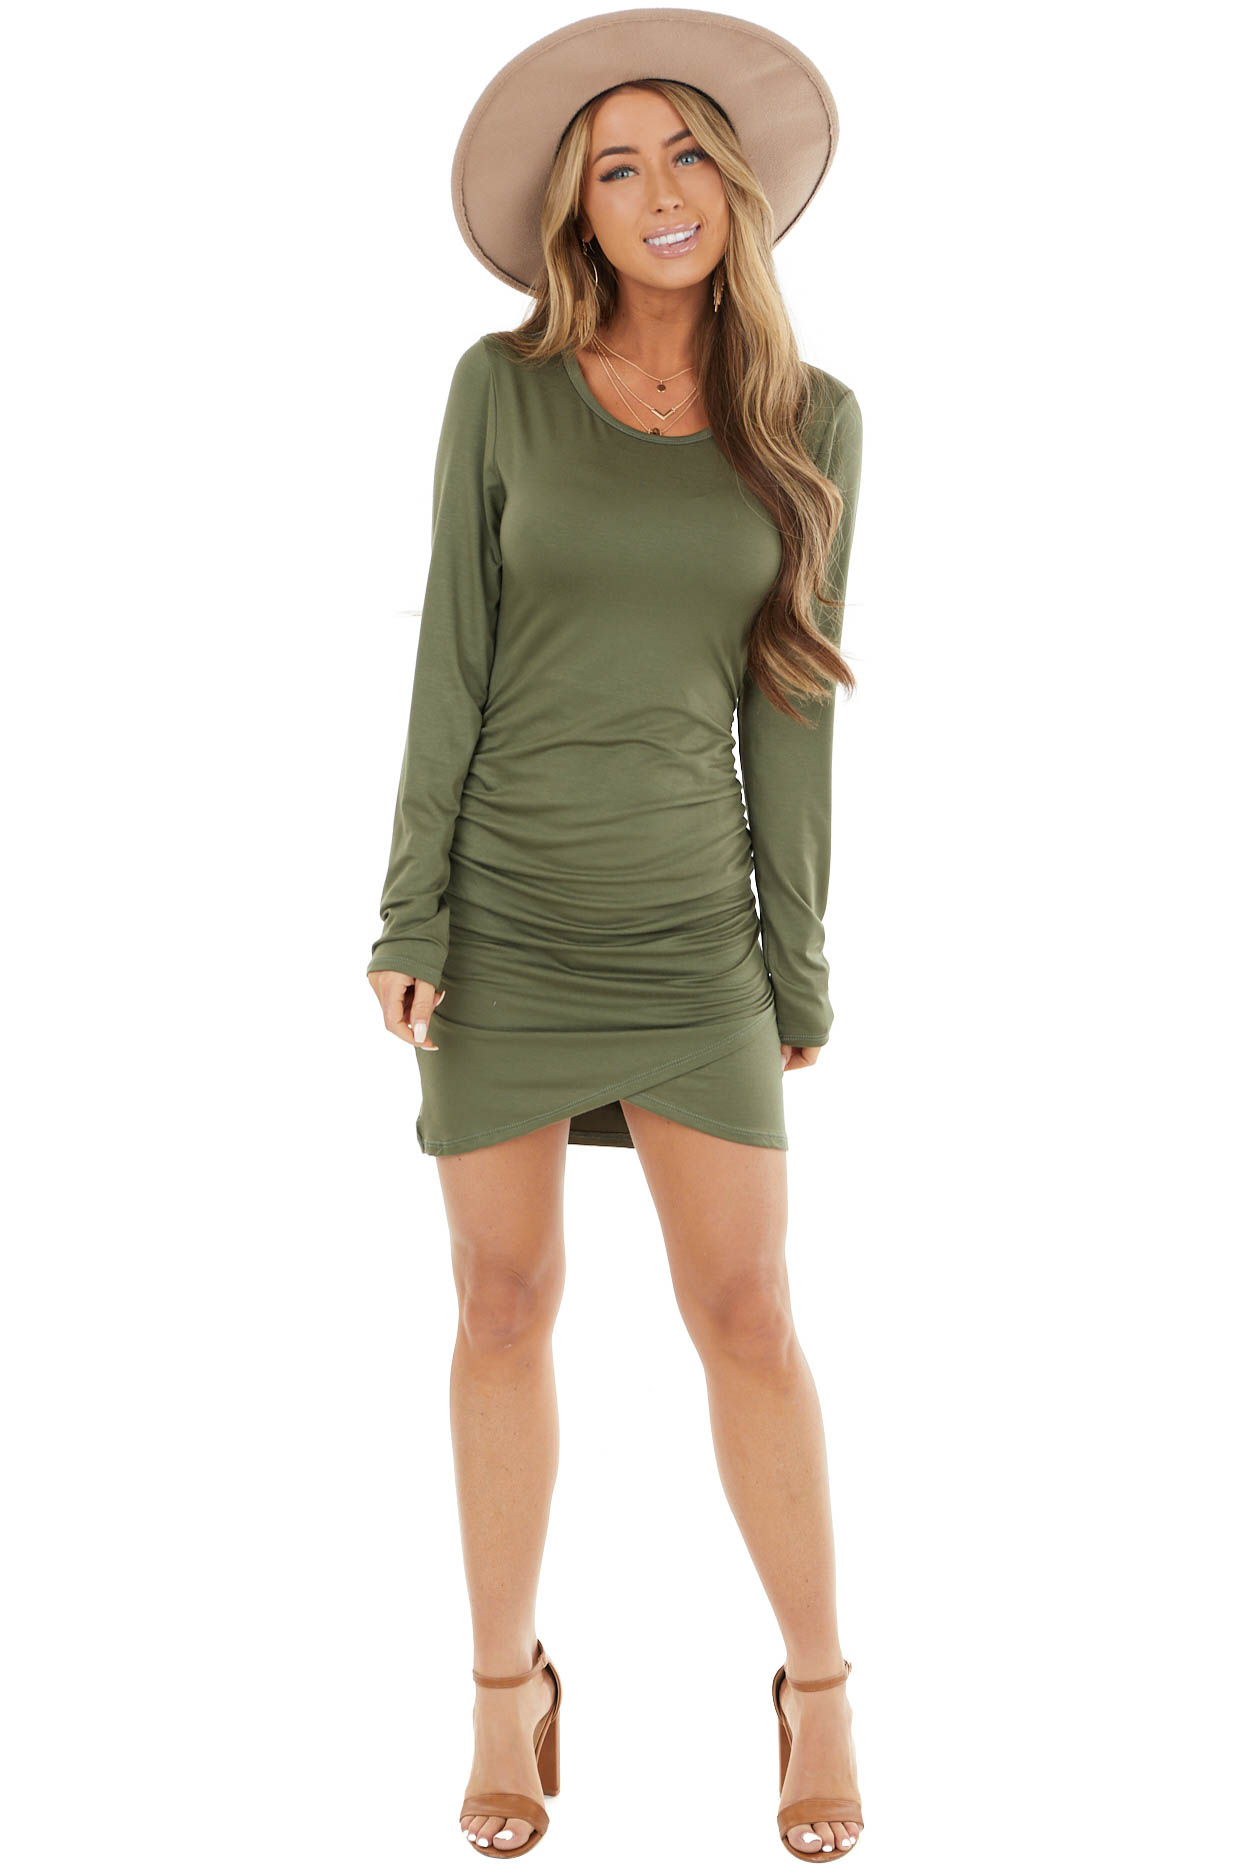 Olive Long Sleeve Bodycon Short Dress with Side Ruching